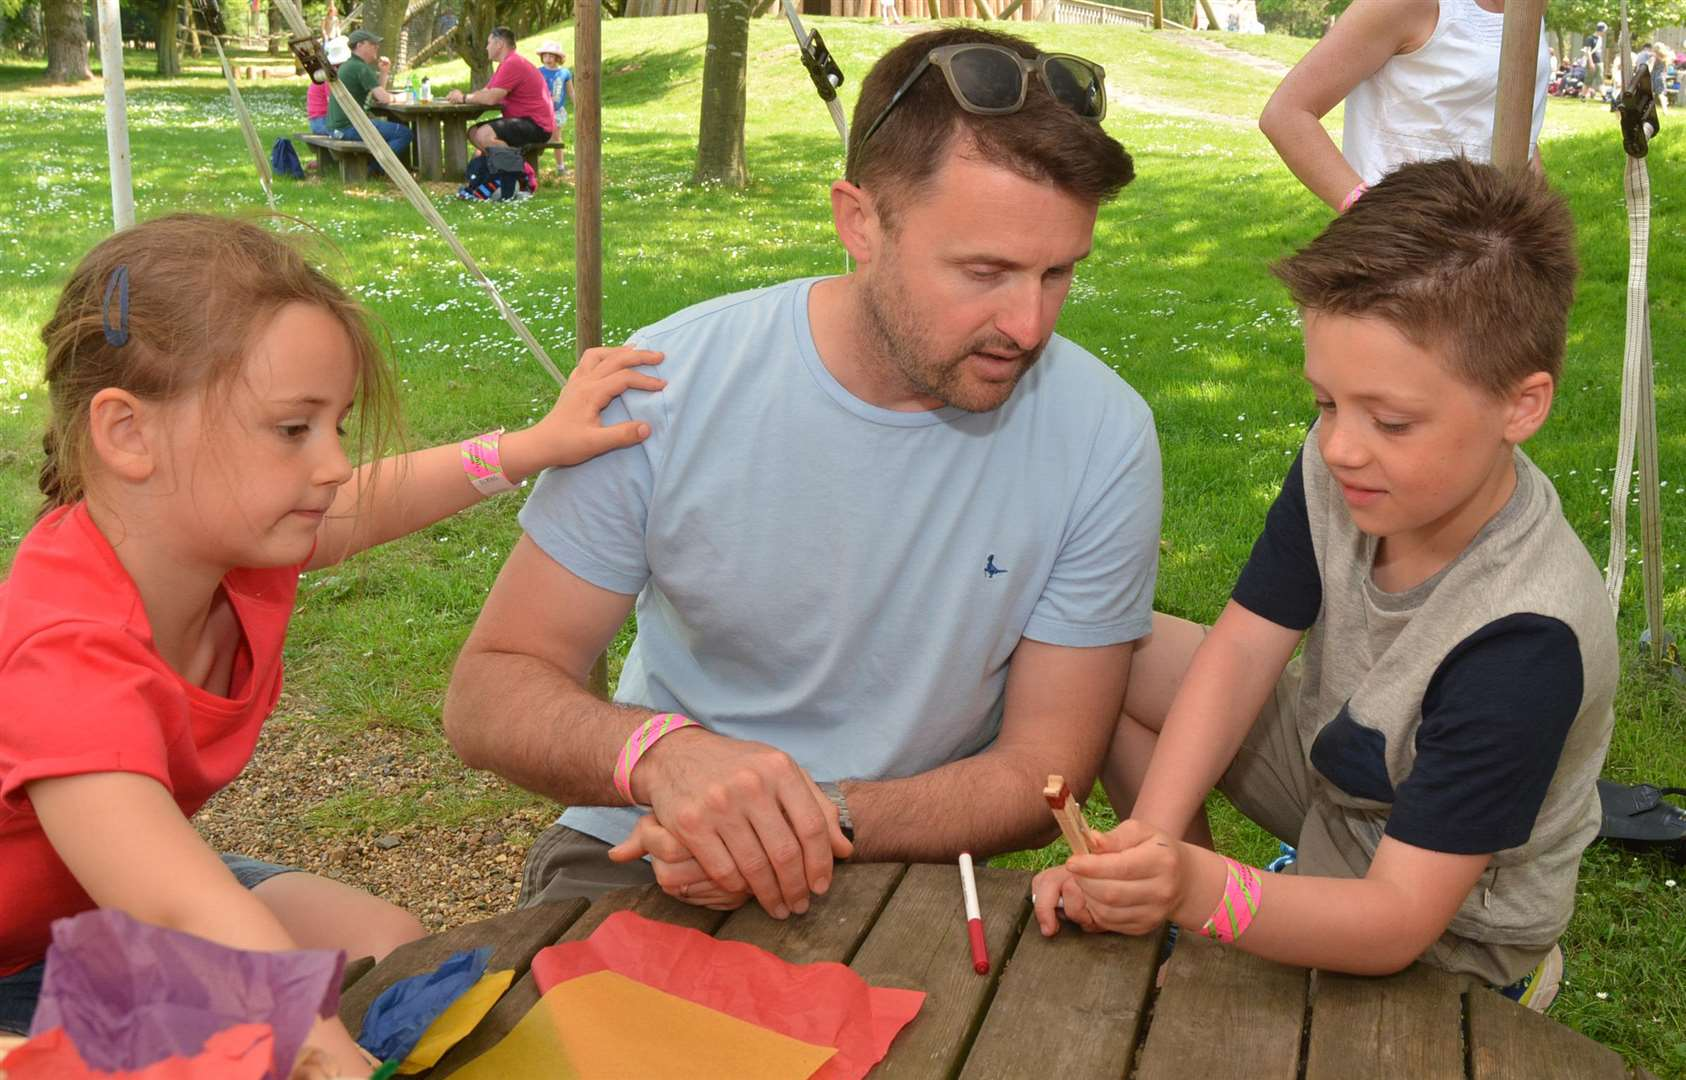 Father James helps Edward and Anna Thomas decide what they are going to make in the craft activities tent (2265895)